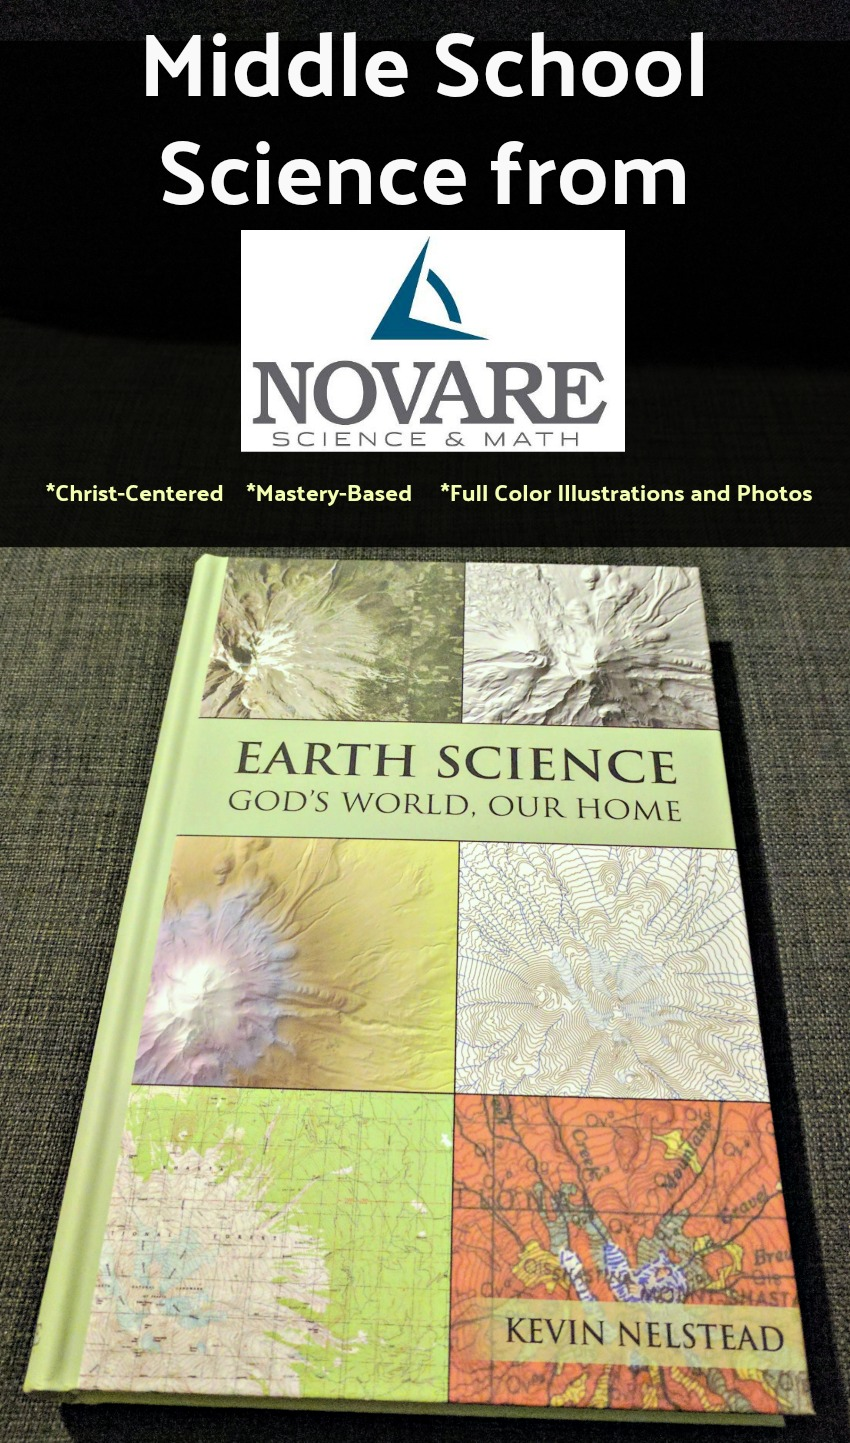 Novare Science & Math - Earth Science Middle School Text Book